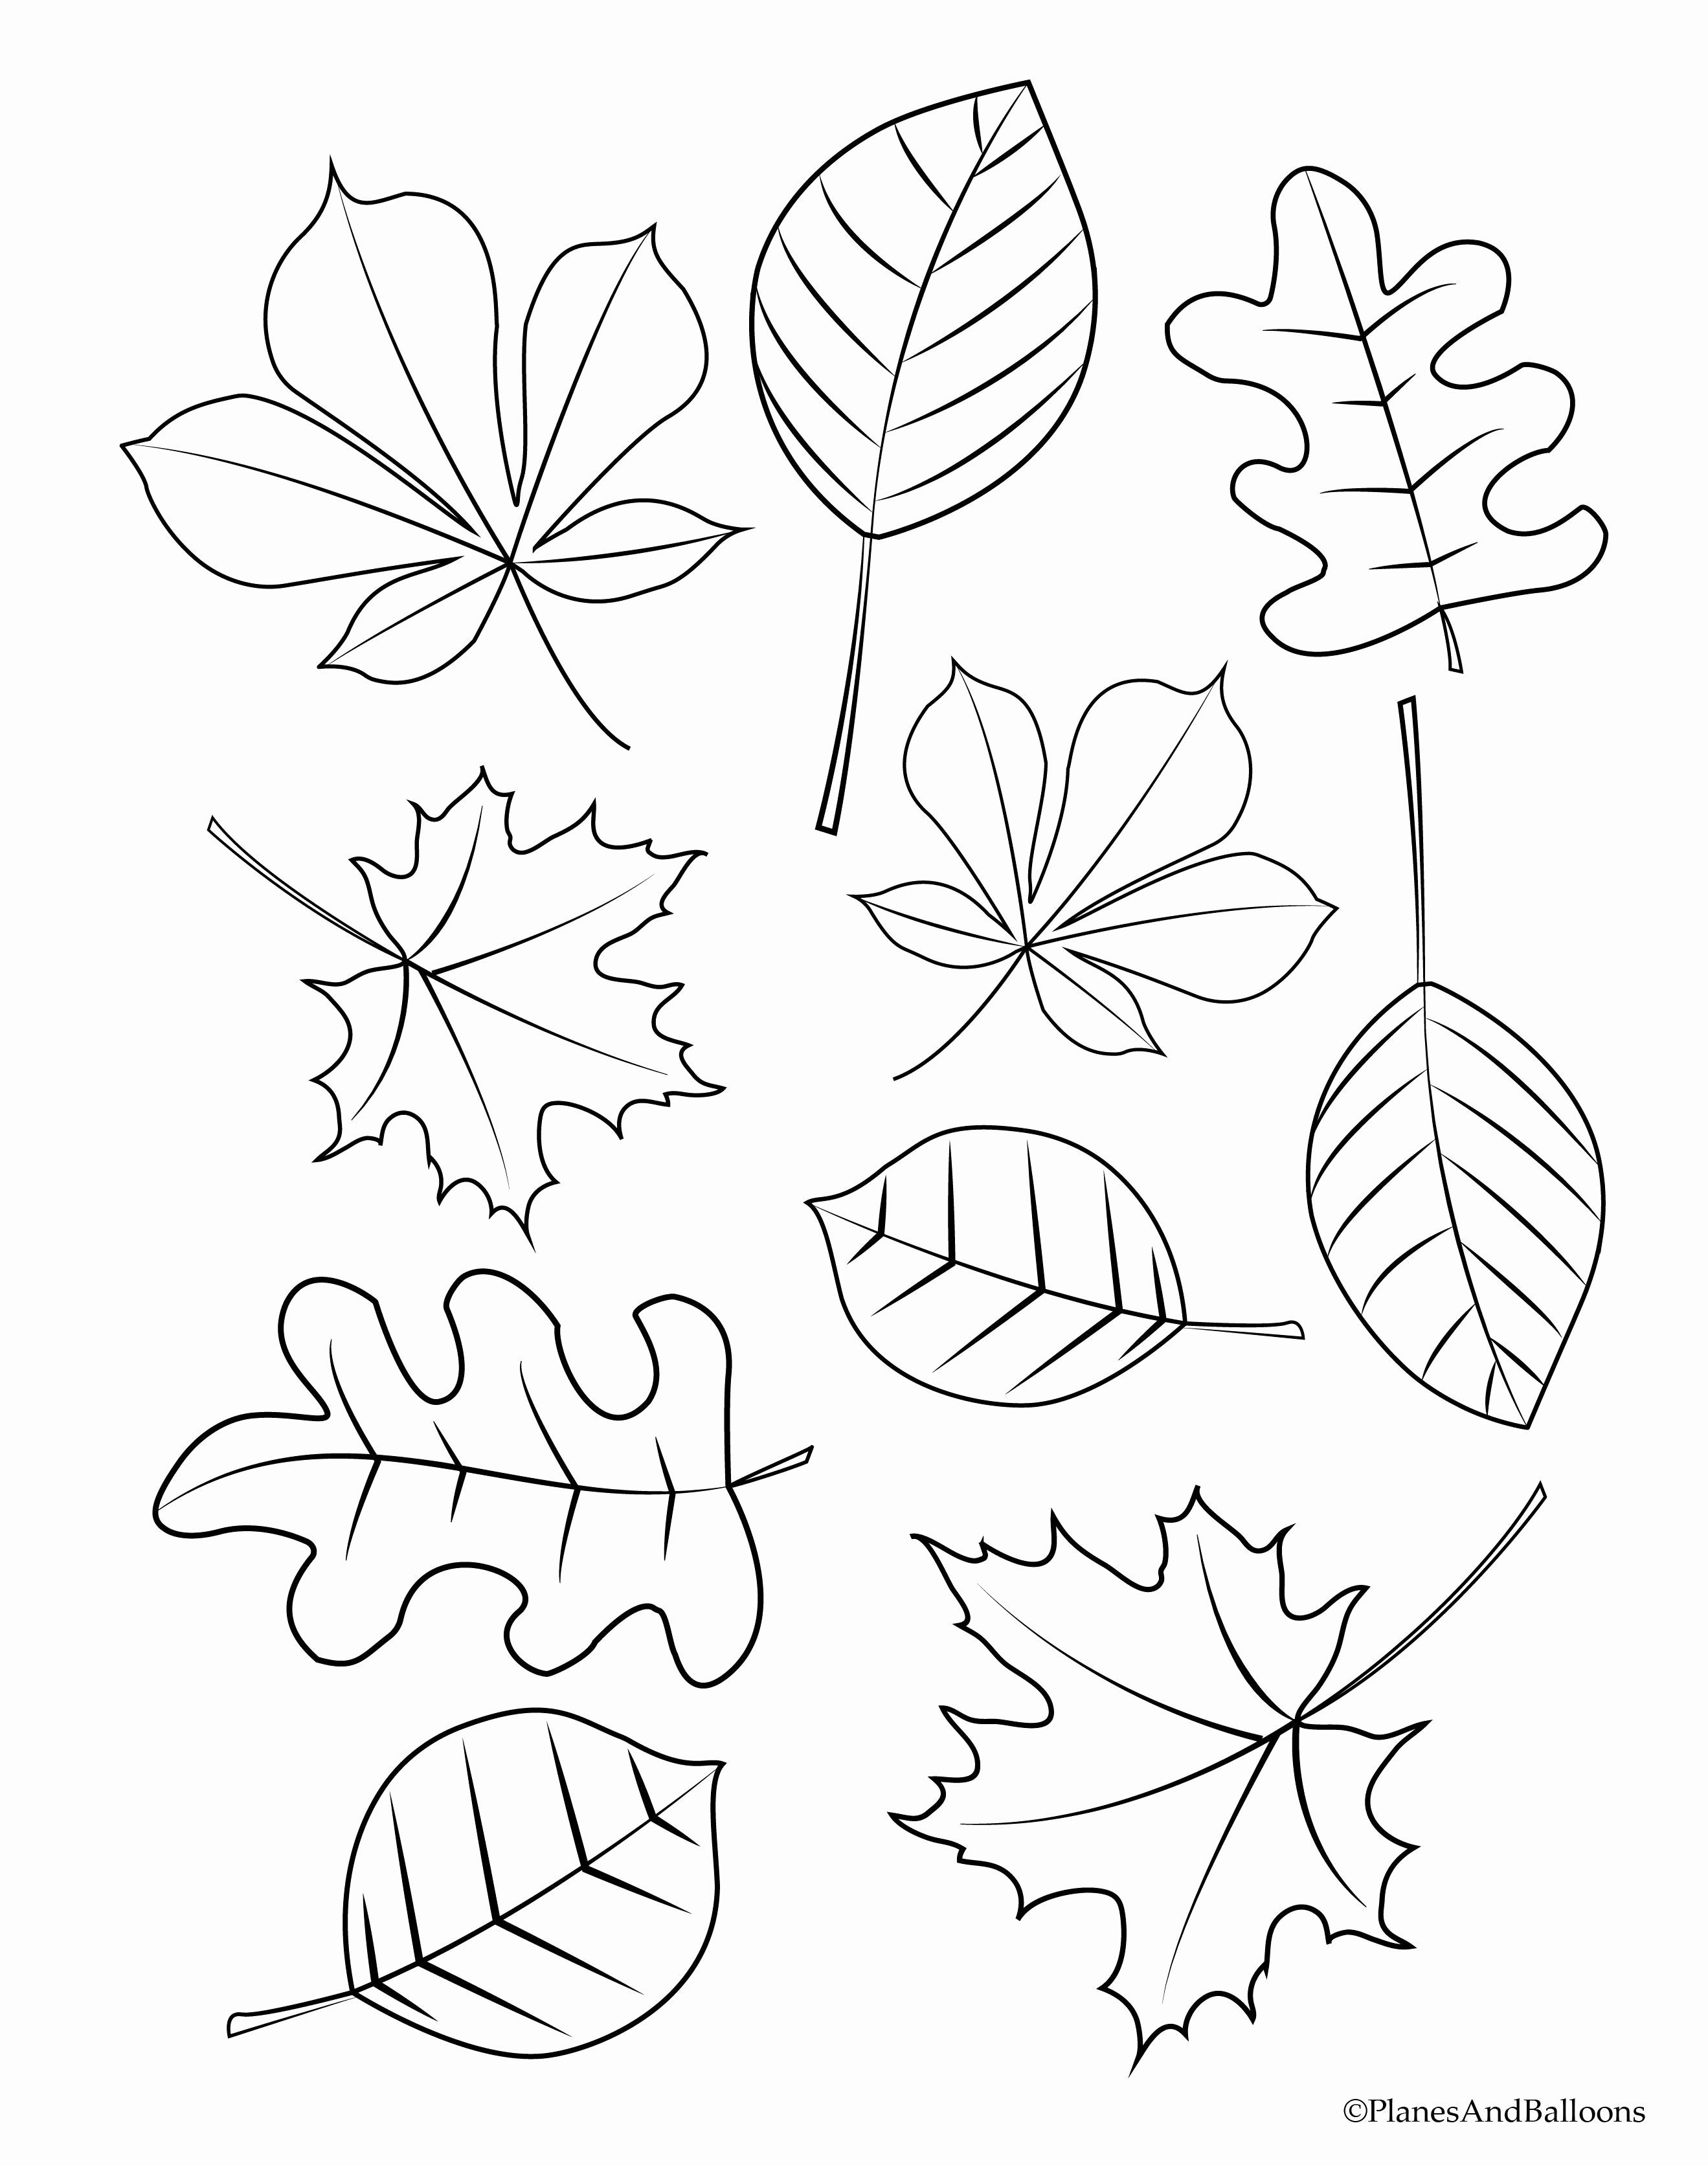 Tree Leaf Coloring Pages Beautiful Coloring Books 70 Fall Leaves Coloring Sheet Ideas Fall Coloring Sheets Leaf Coloring Page Fall Leaves Coloring Pages